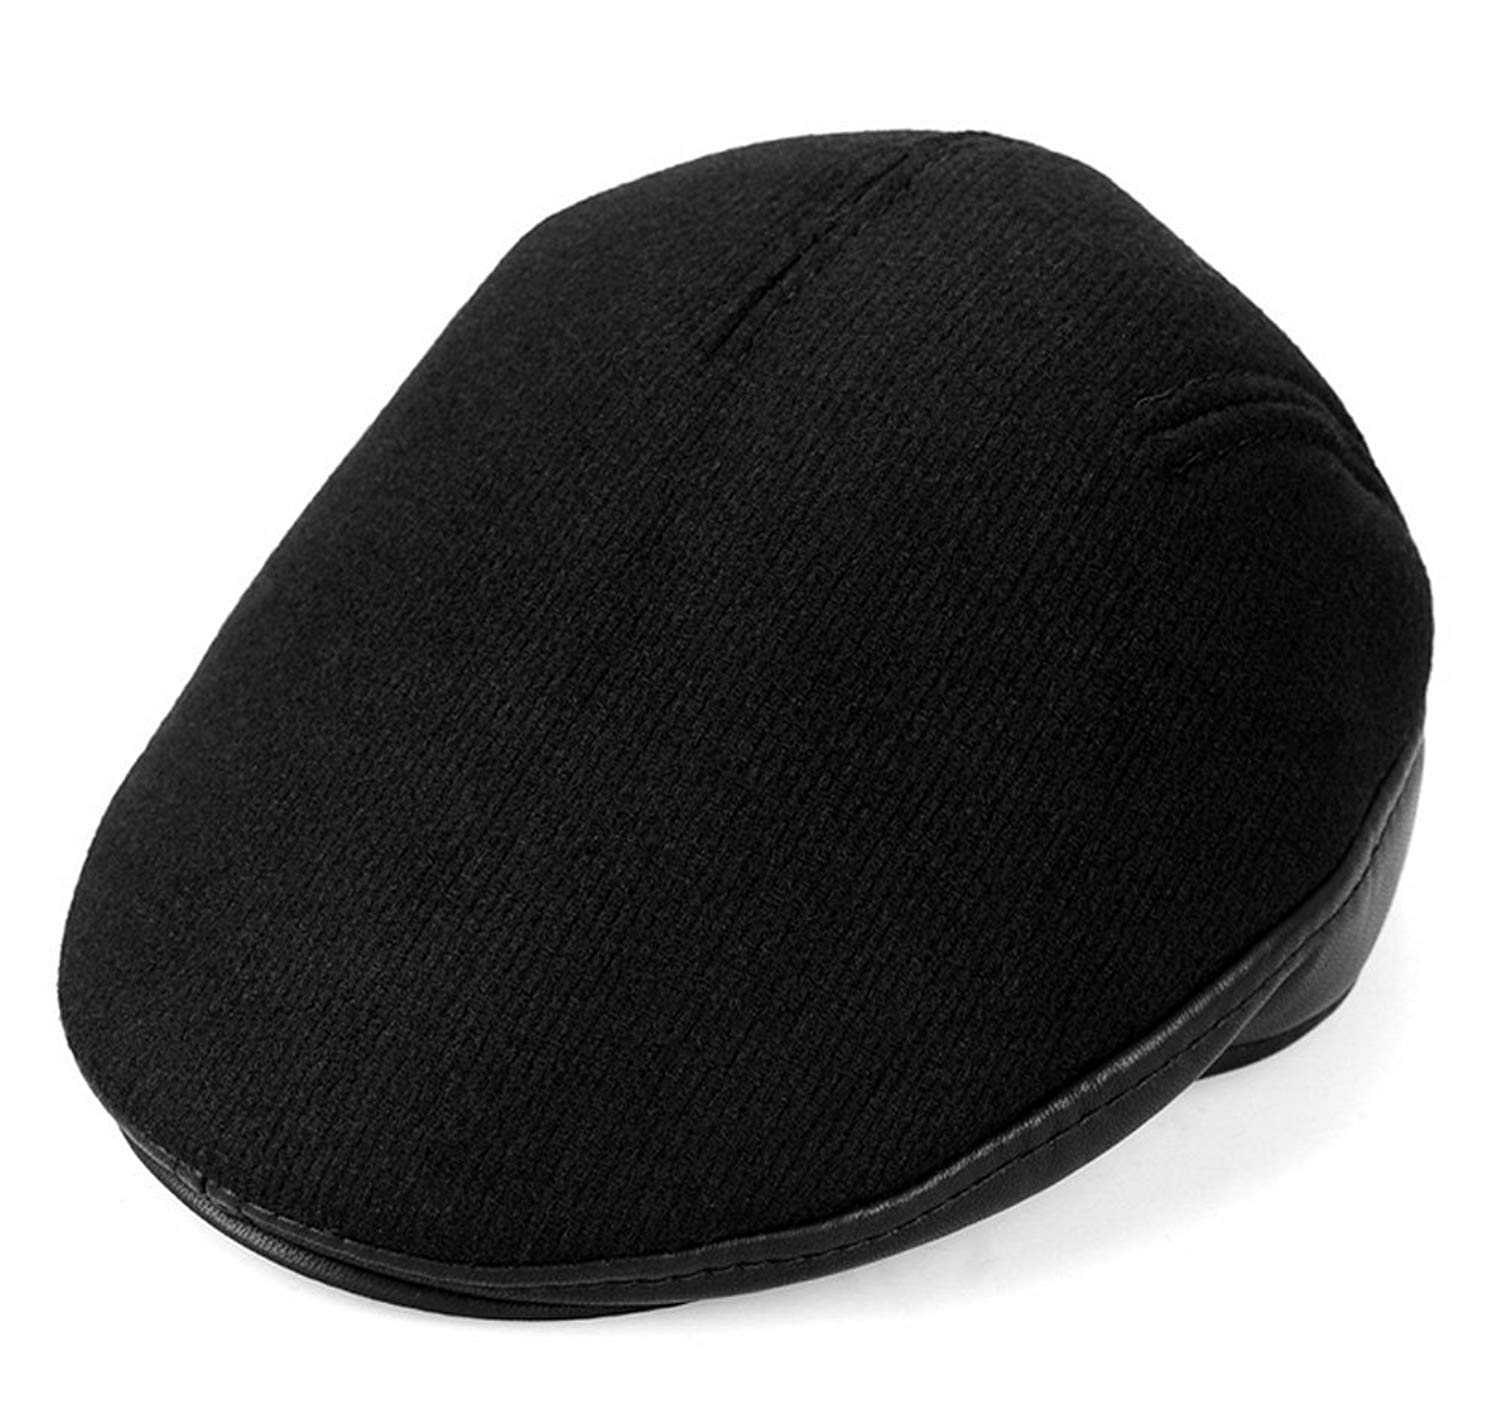 c299aeb4e2a Get Quotations · Men s Classic Wool Plain Blend Newsboy Ivy Hat Wool Thick  Warm Gatsby Driver Caps Spring Autumn